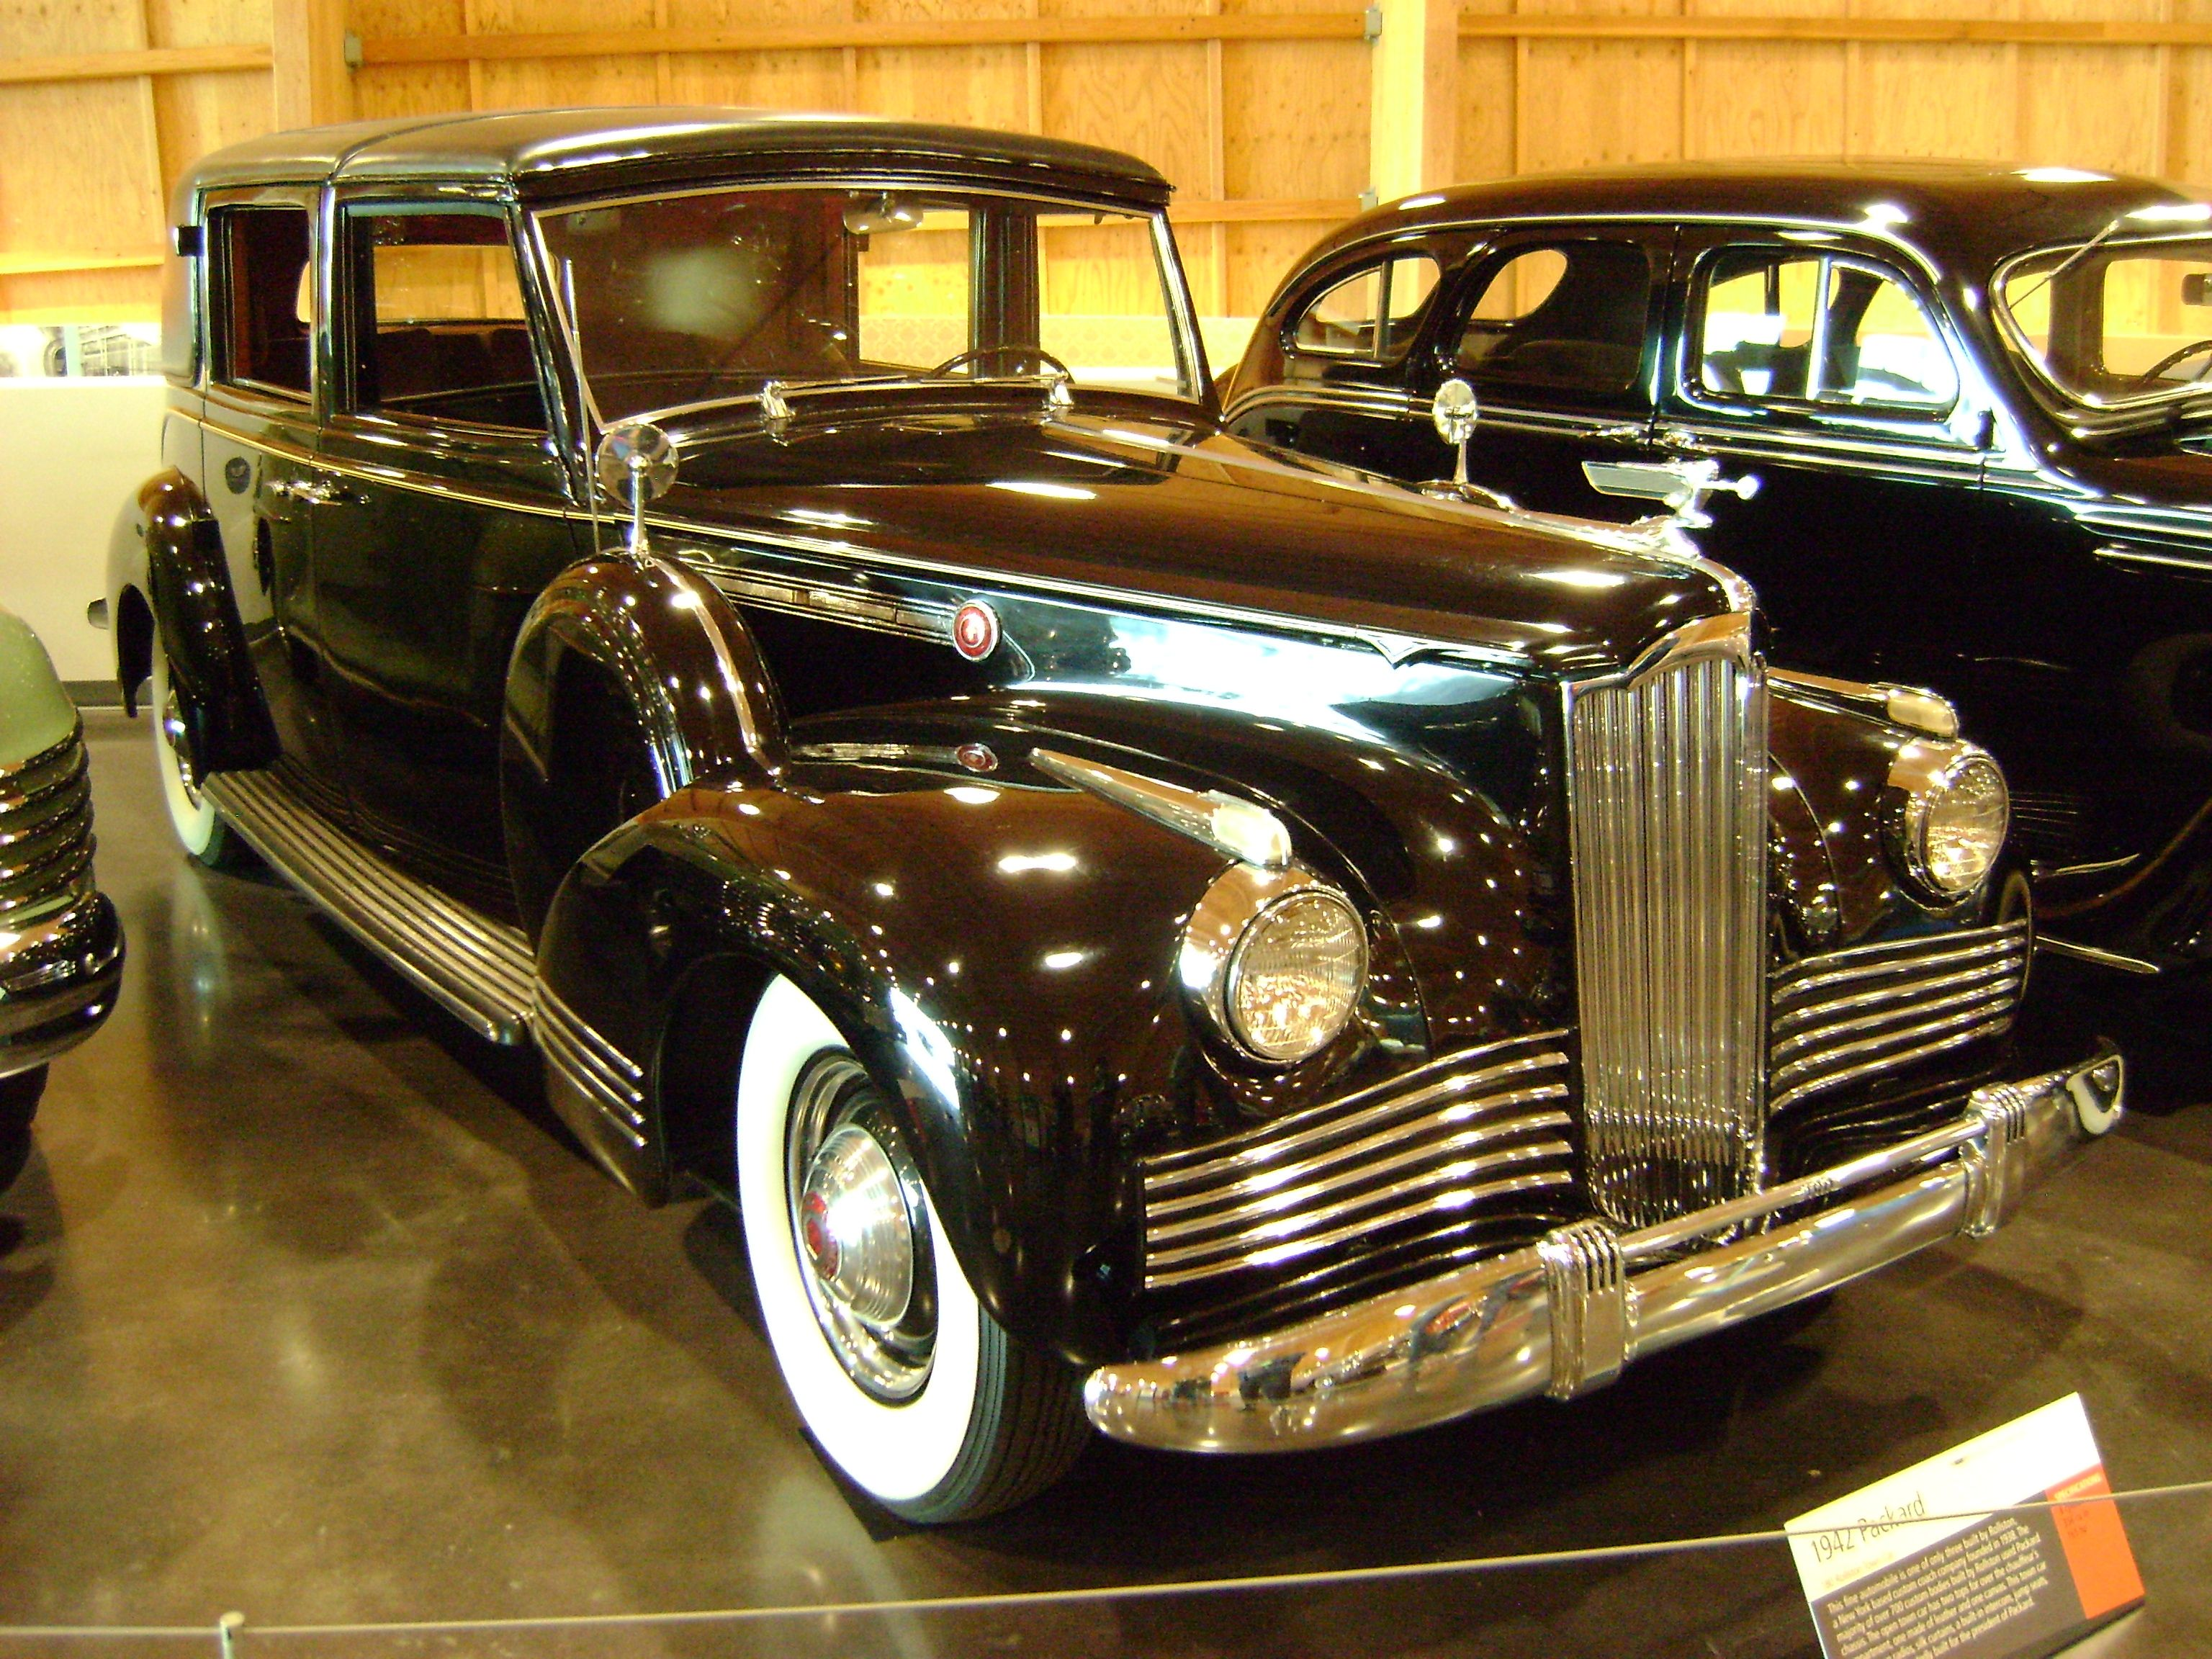 Packard Photo Taken At LeMay Museum In Tacoma WA USA - Classic car museums in usa